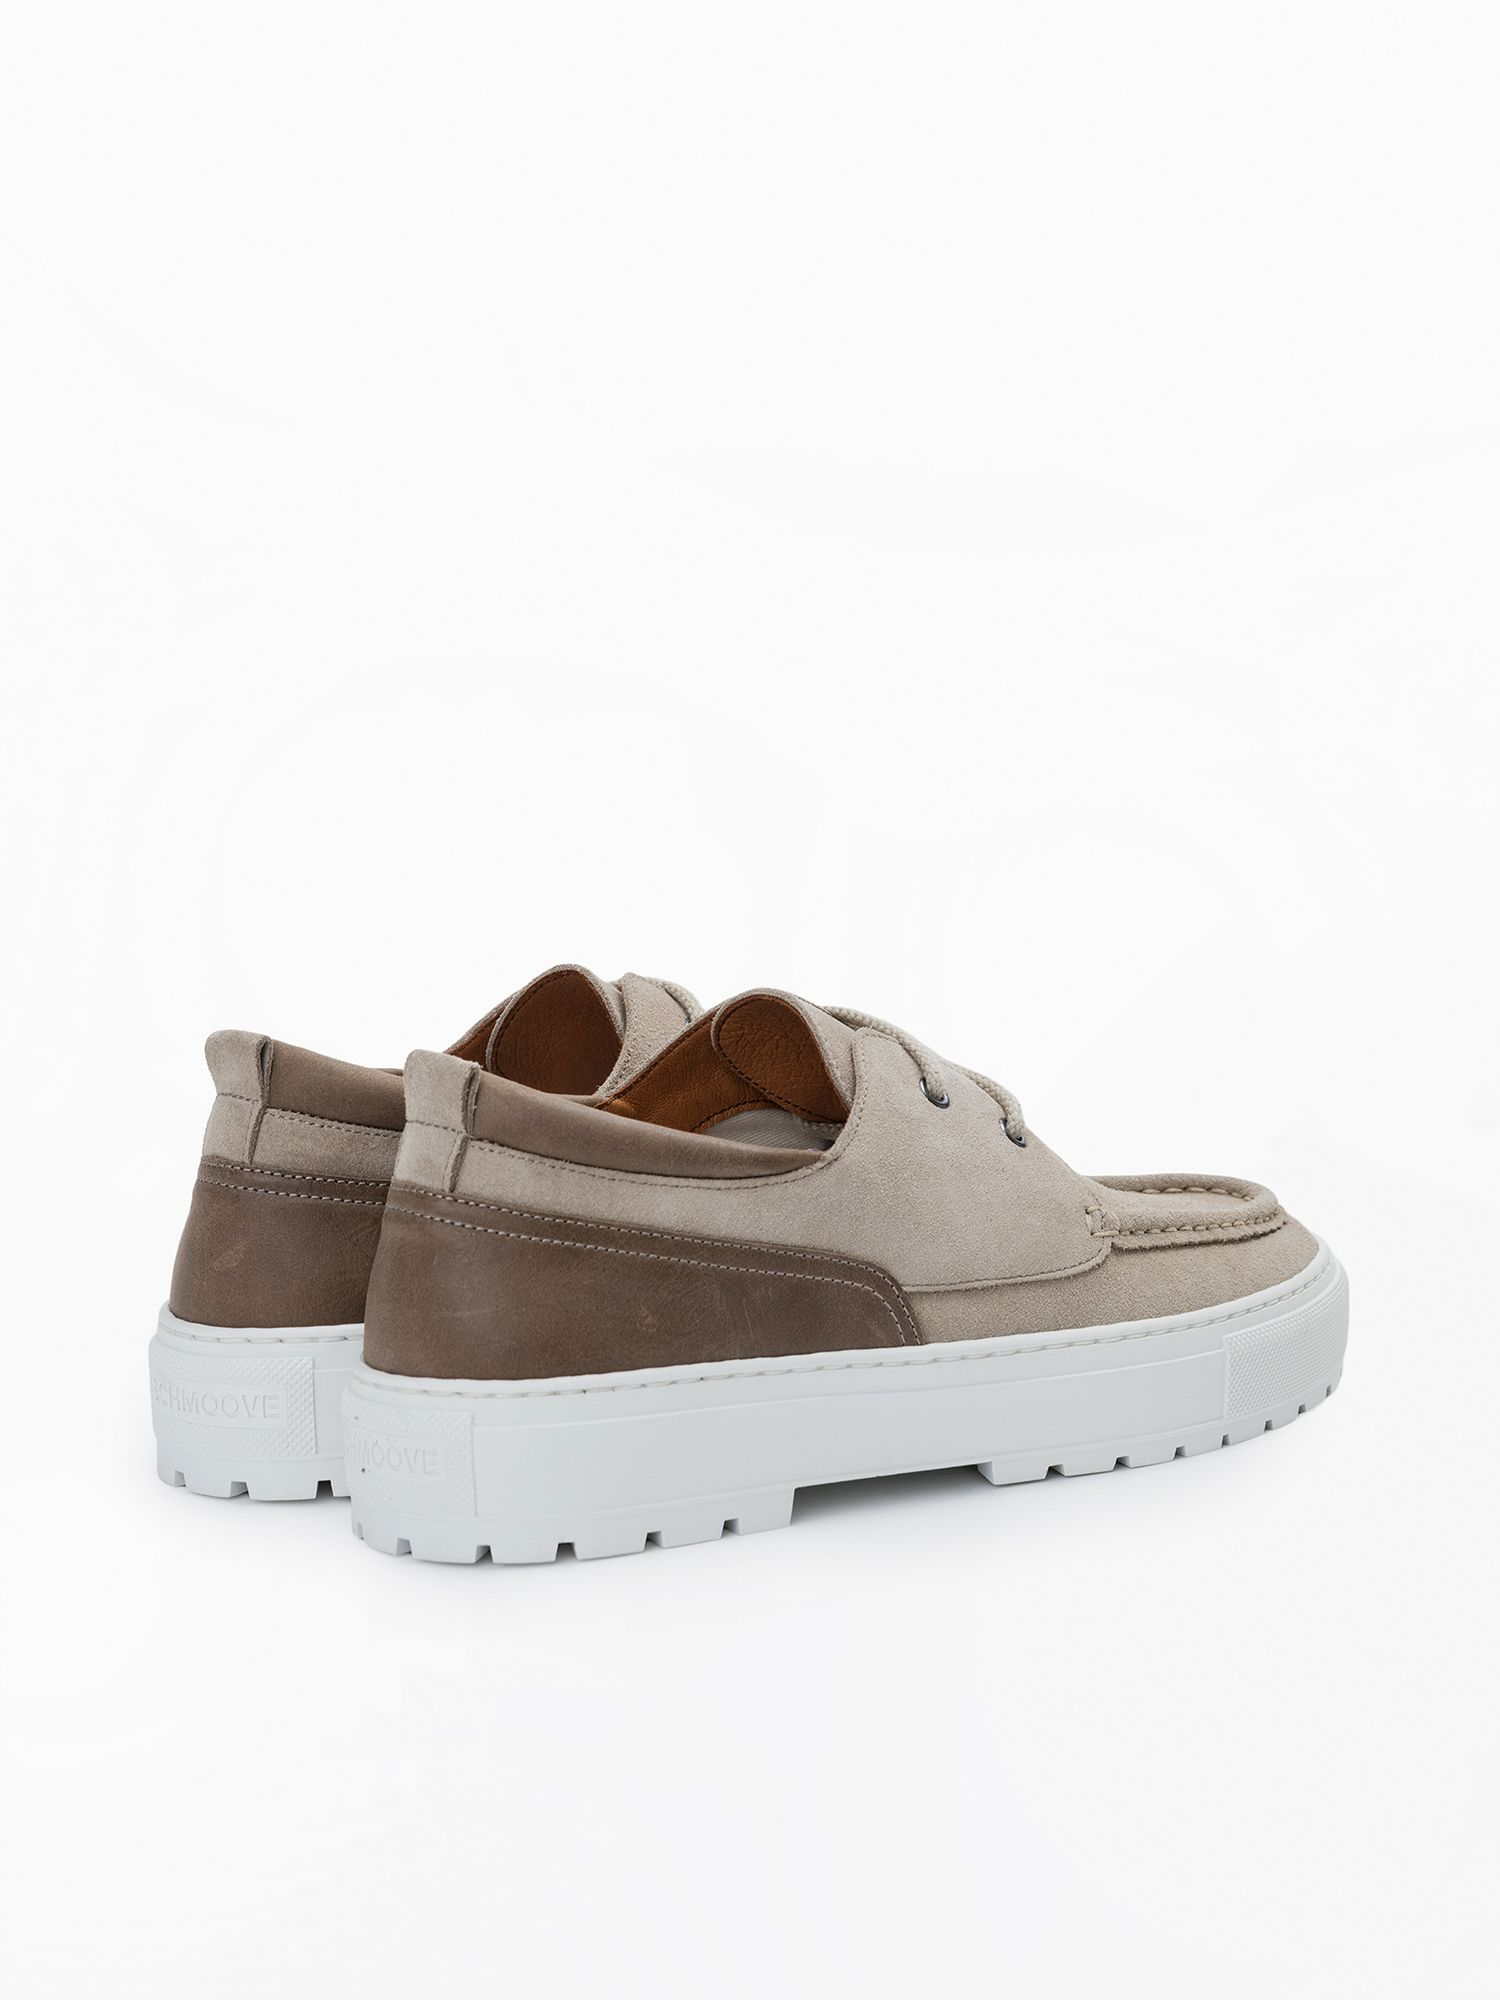 schmoove.fr Laker Boat - Suede - Beige/Taupe